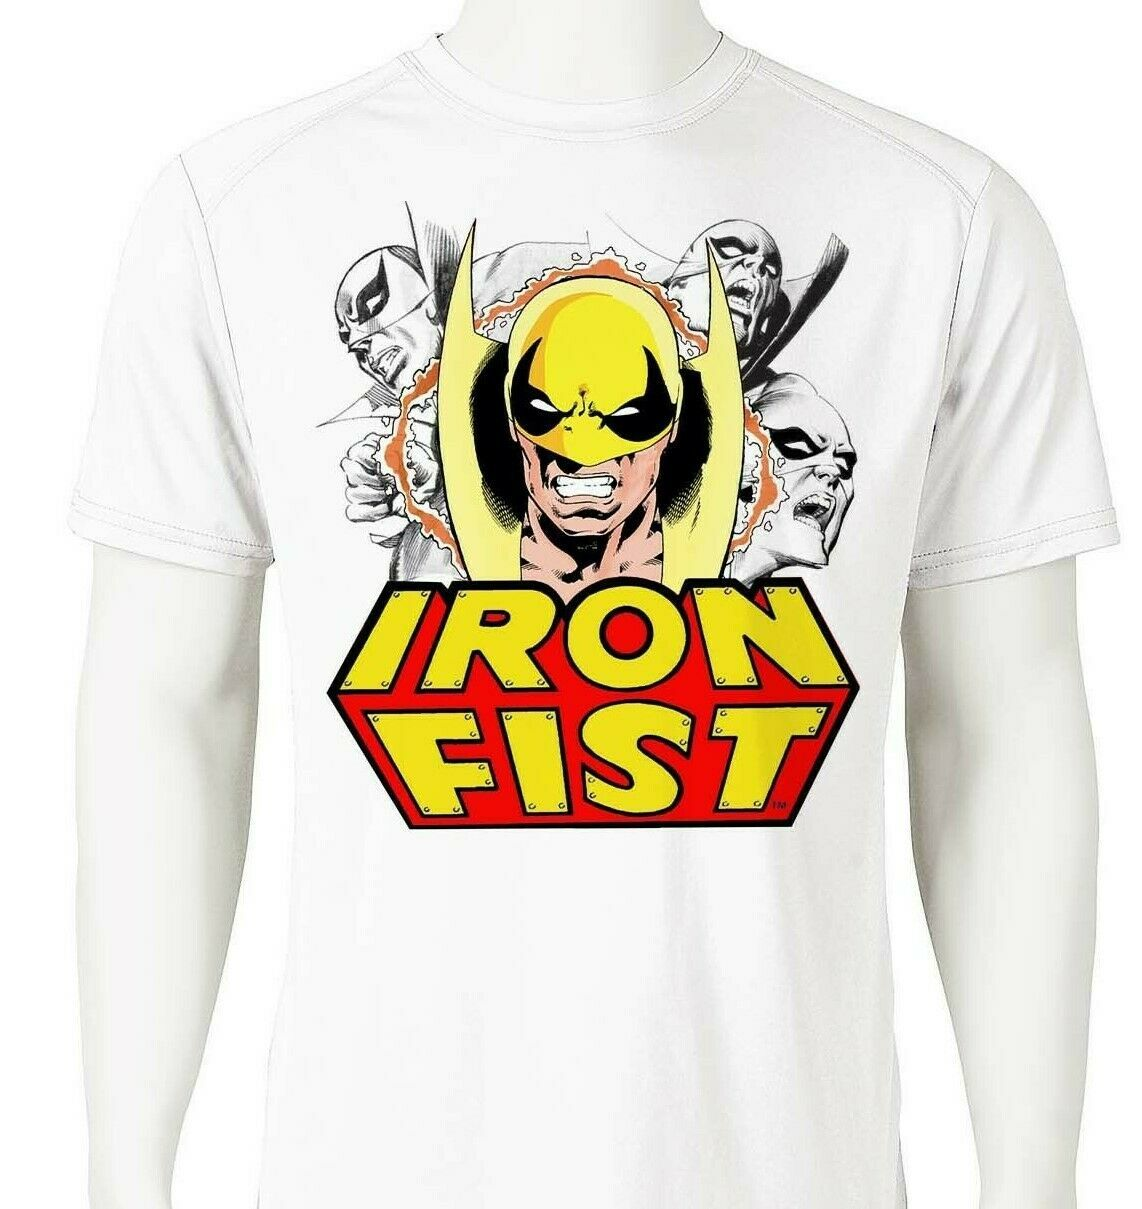 Iron Fist 2 Dri Fit T-shirt printed active wear retro comic UPF +50 Sun Shirt